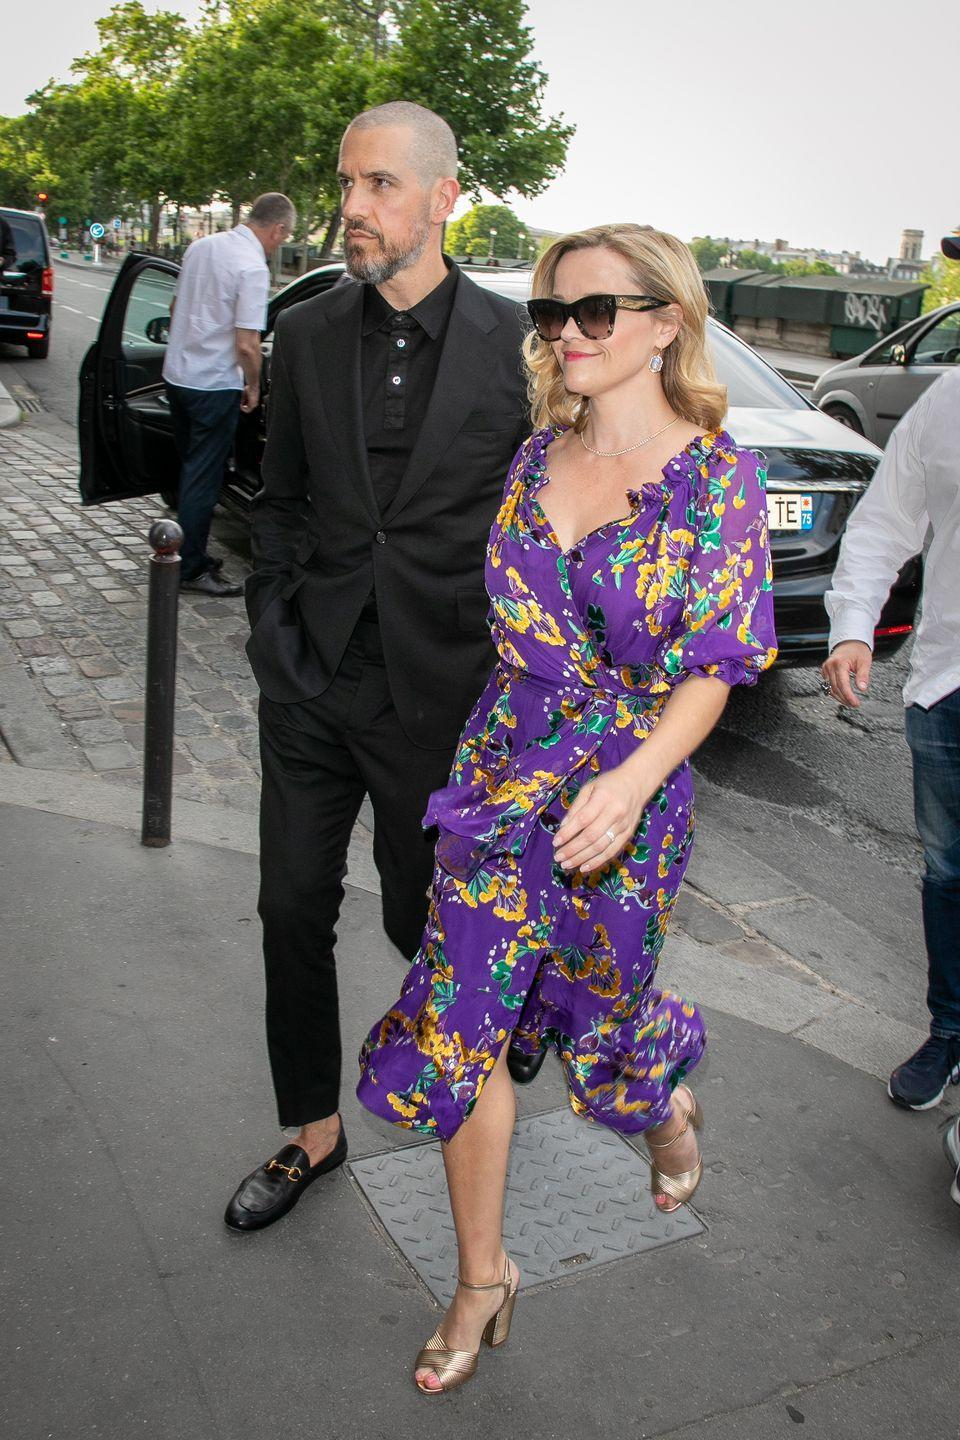 <p>Of course Reese Witherspoon attended this Big Little Lies reunion... we mean wedding! Reese wore a floral wrap dress to Zoë Kravitz's wedding reception.</p>